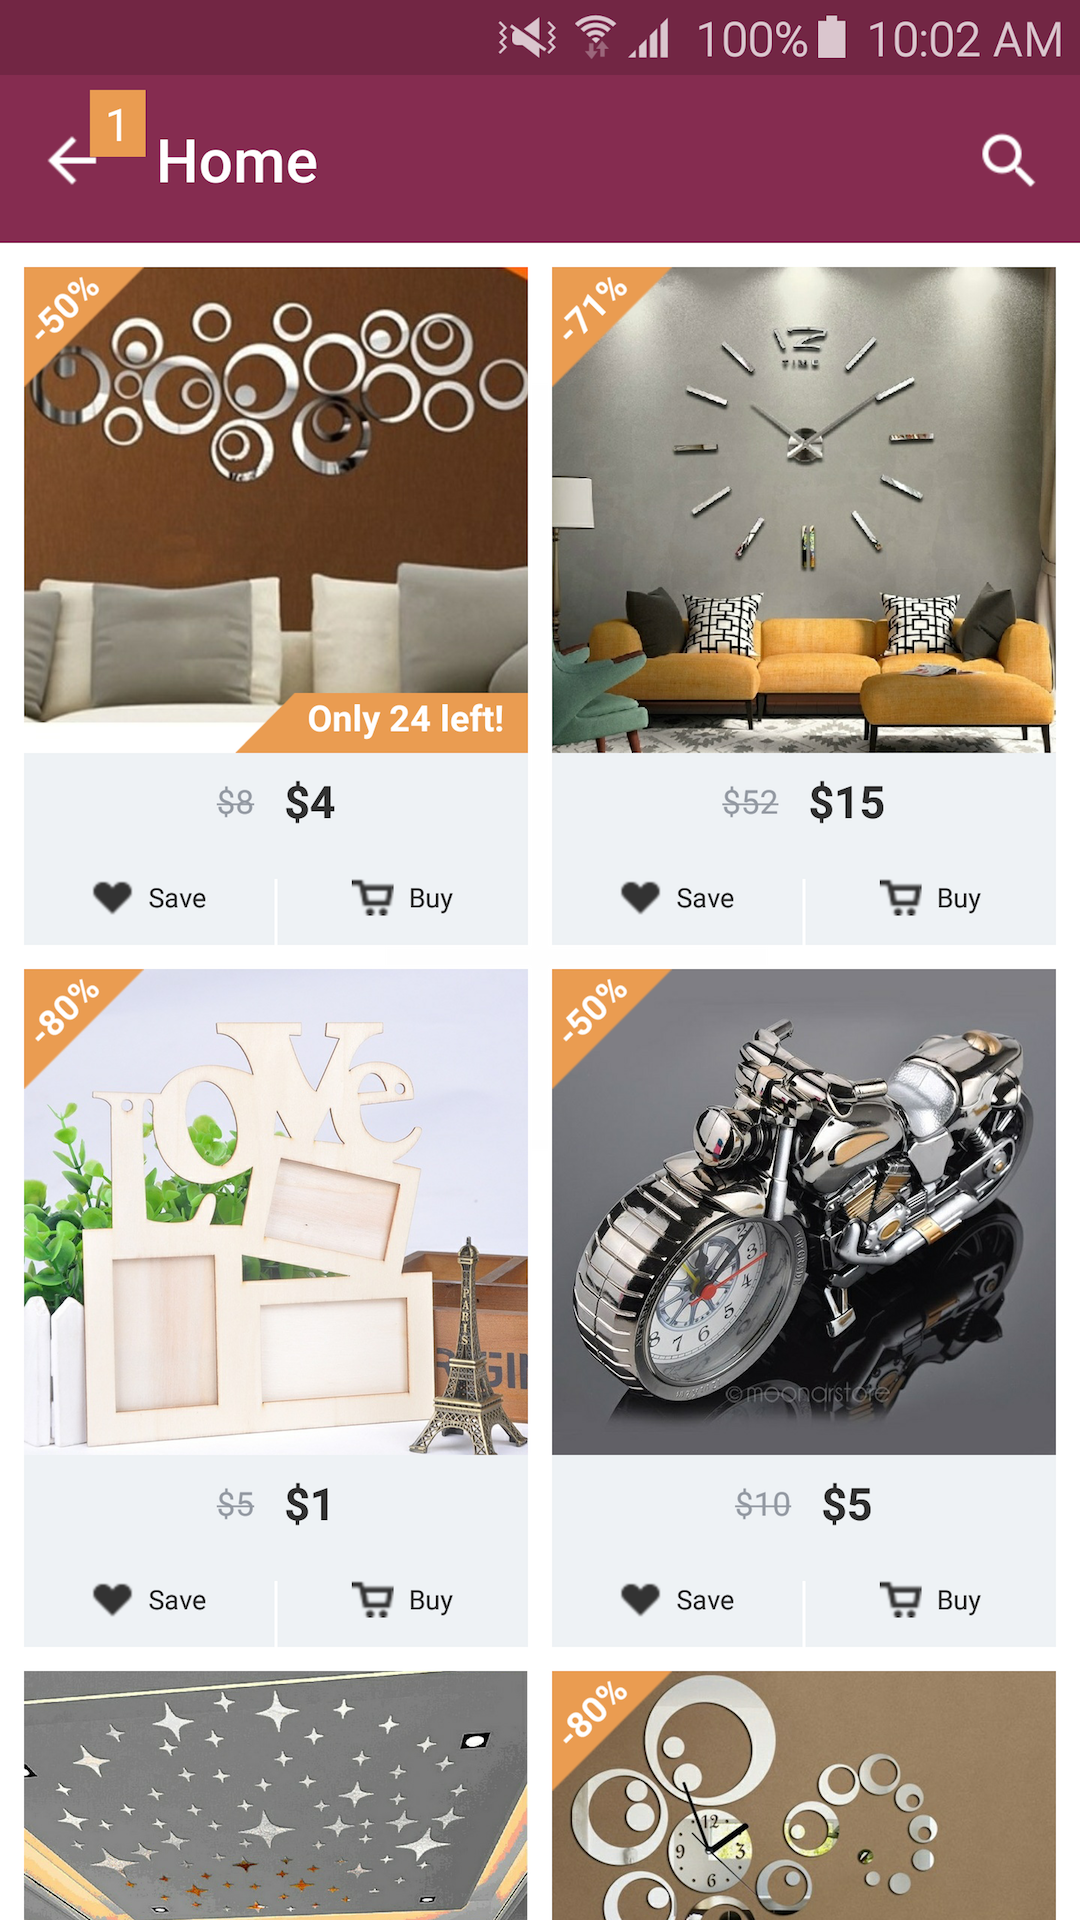 Home - Design & Decor Shopping: Amazon.co.uk: Appstore for Android